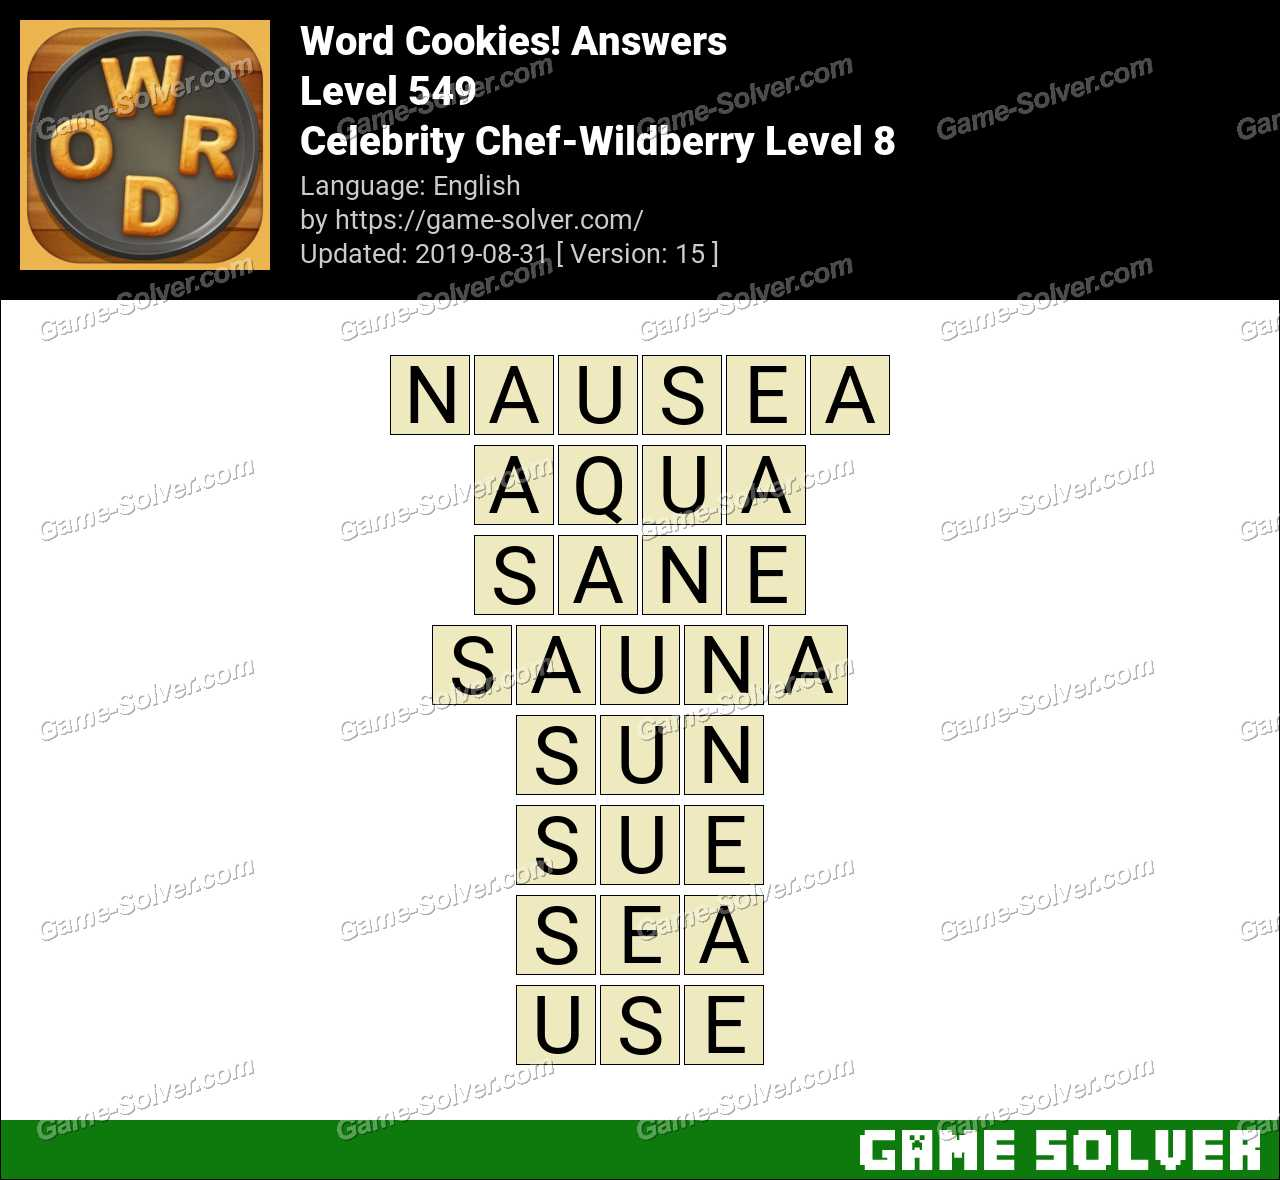 Word Cookies Celebrity Chef-Wildberry Level 8 Answers